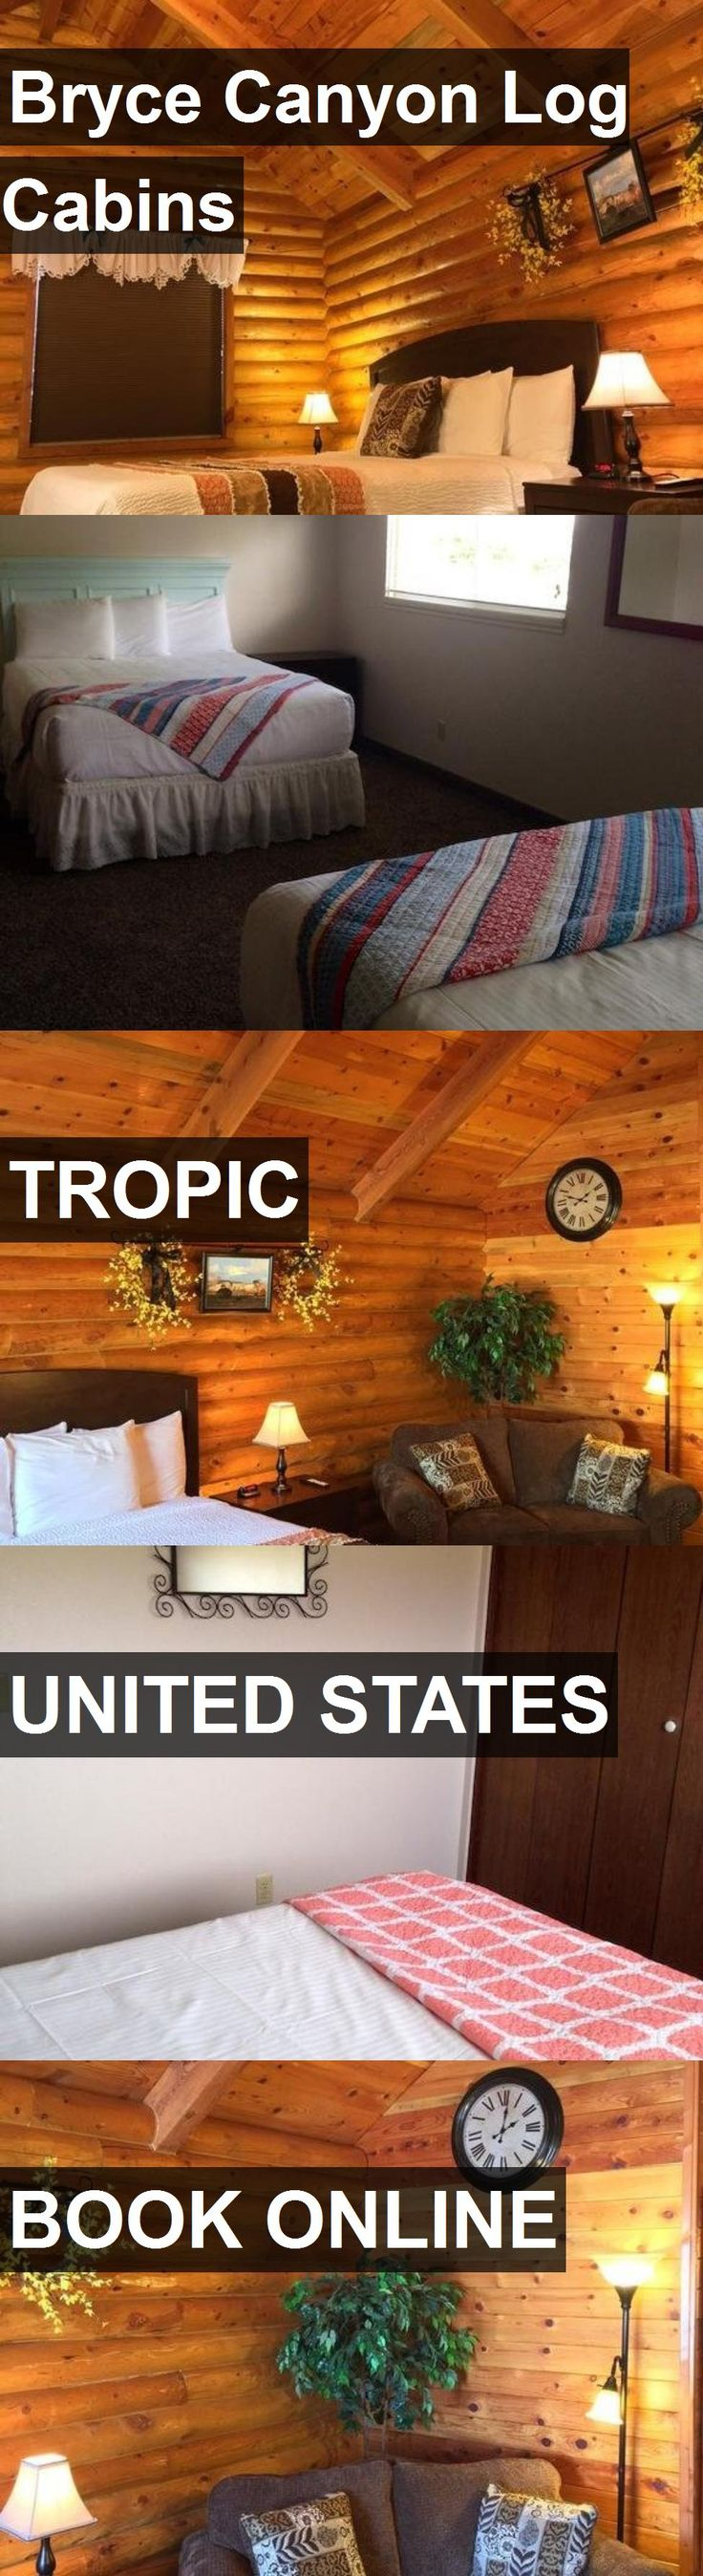 Hotel Bryce Canyon Log Cabins in Tropic, United States. For more information, photos, reviews and best prices please follow the link. #UnitedStates #Tropic #travel #vacation #hotel